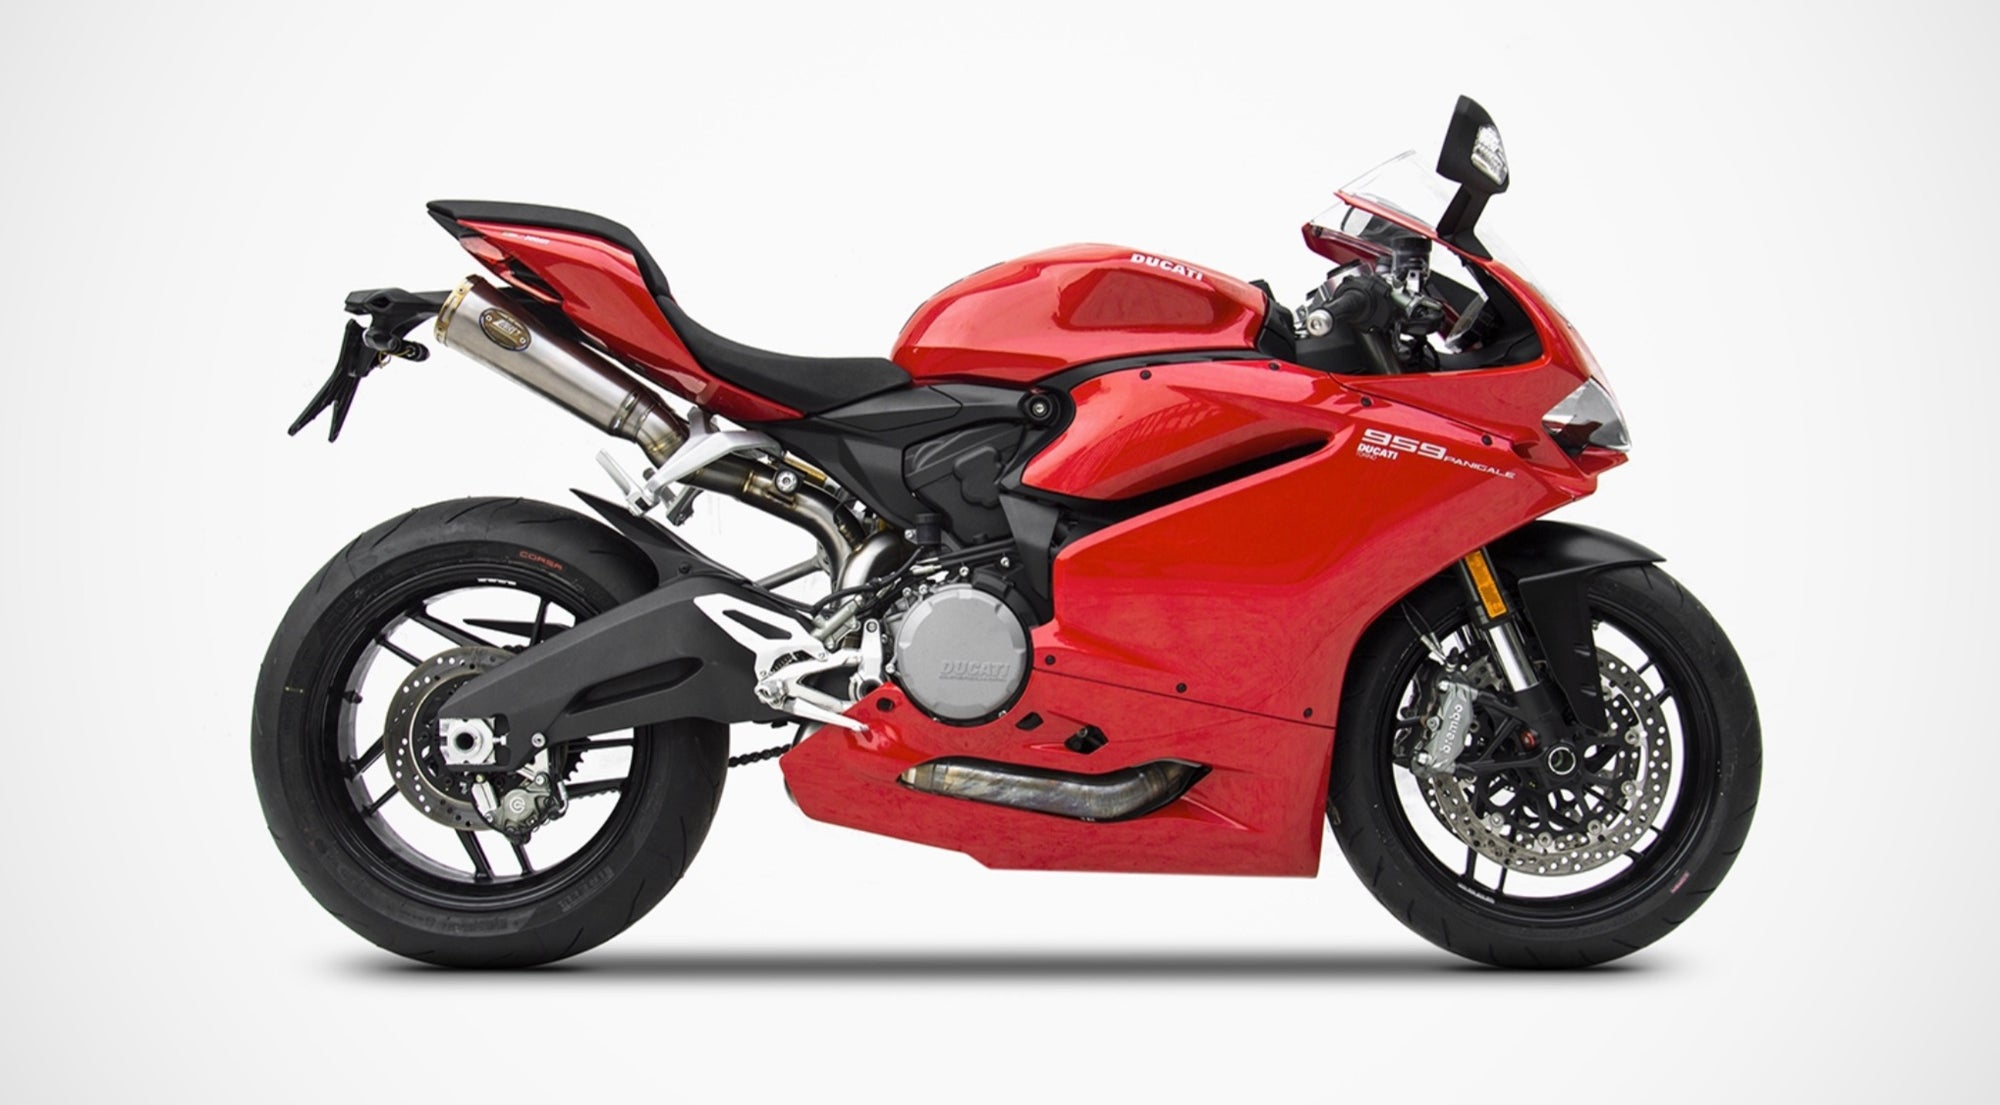 Zard Exhausts - Ducati Panigale 959, Exhaust, Zard - Averys Motorcycles